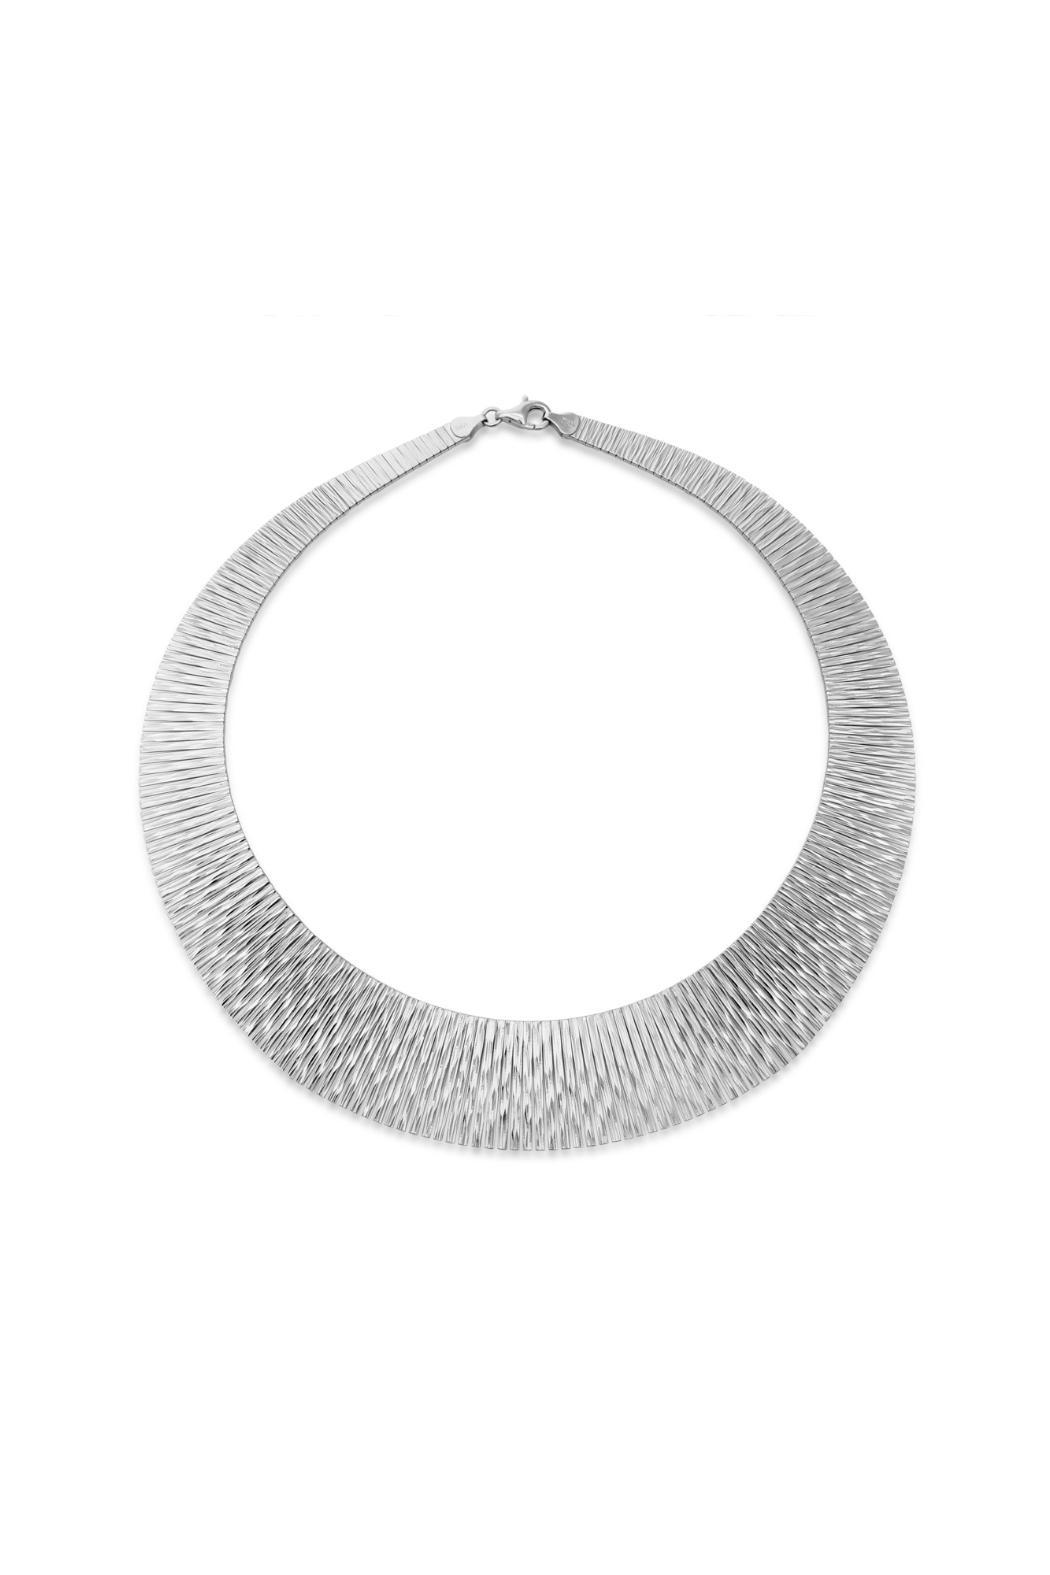 Passiana Sterling Tapered Bib Necklace - Main Image